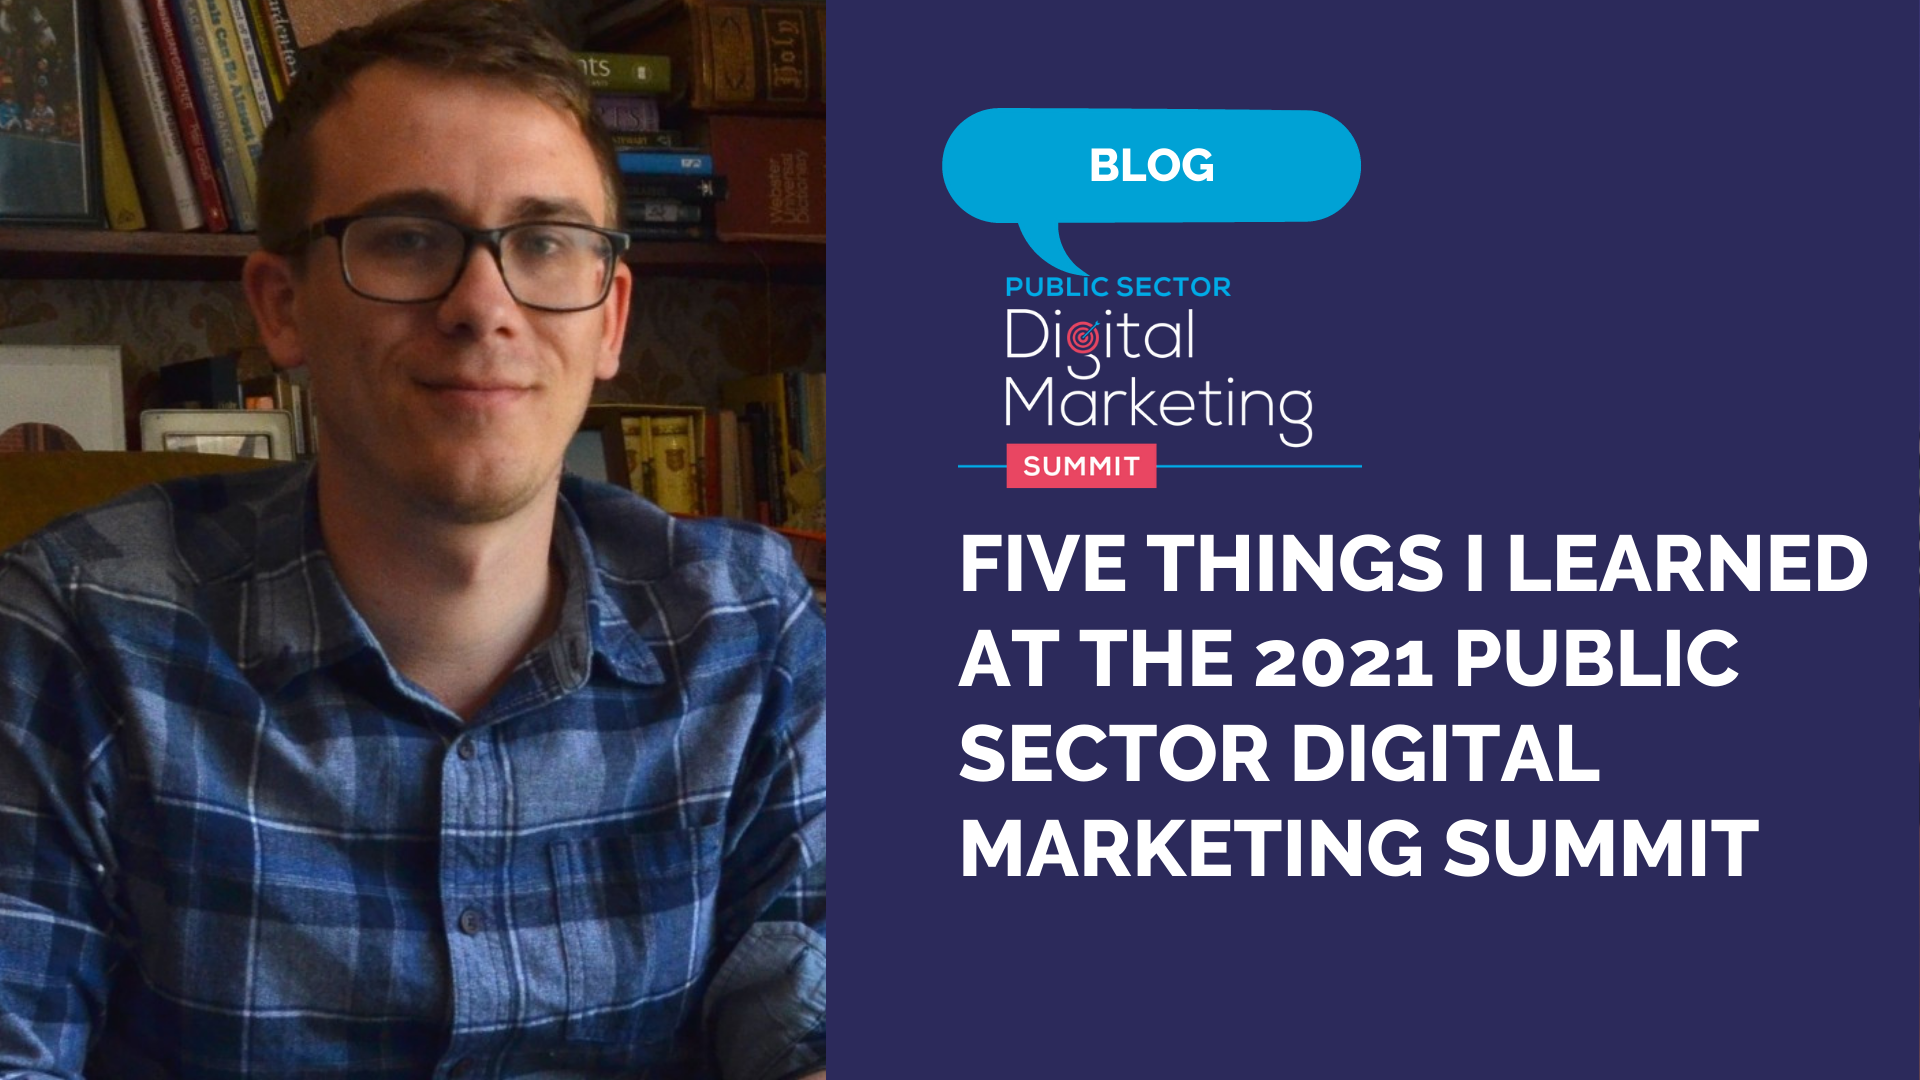 Five Things I learned at the 2021 Public Sector Digital Marketing Summit